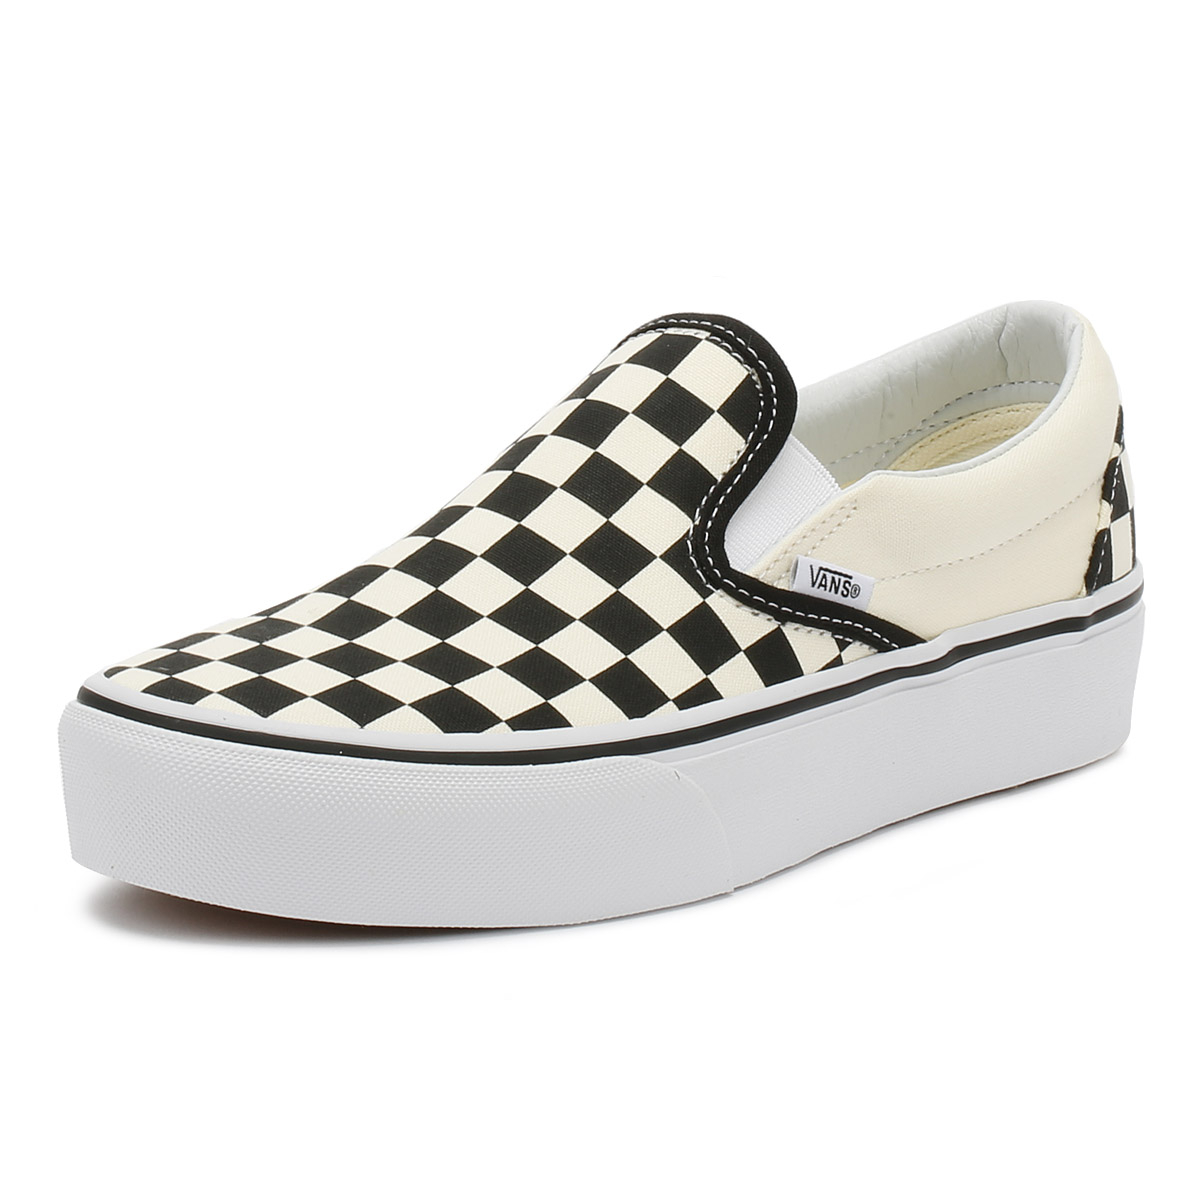 477dc8dadb Details about Vans Womens Trainers Black   White Checkerboard Slip On  Platform Casual Shoes